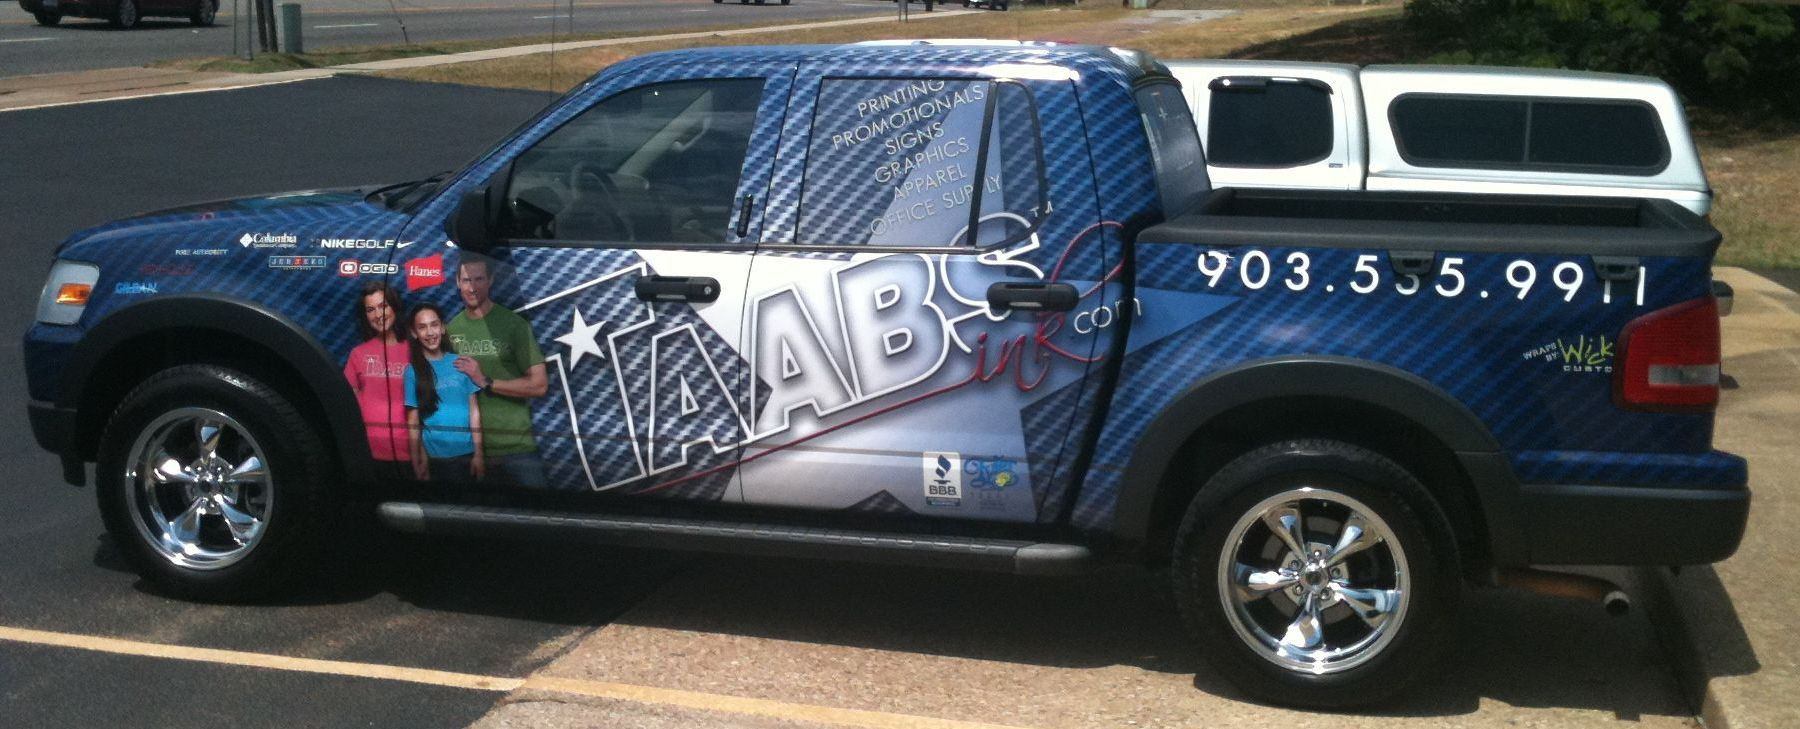 TAABS 3M Control Tac Vehicle Wrap